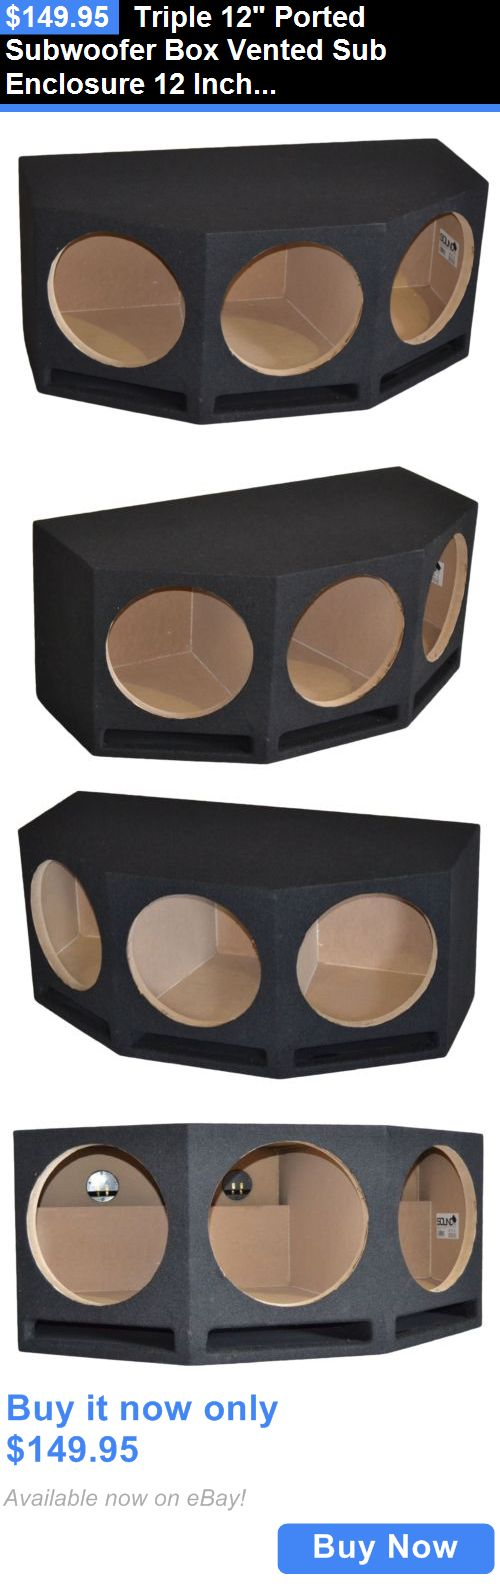 Speaker Sub Enclosures: Triple 12 Ported Subwoofer Box Vented Sub Enclosure 12 Inch, 1 Baffle -Angled BUY IT NOW ONLY: $149.95